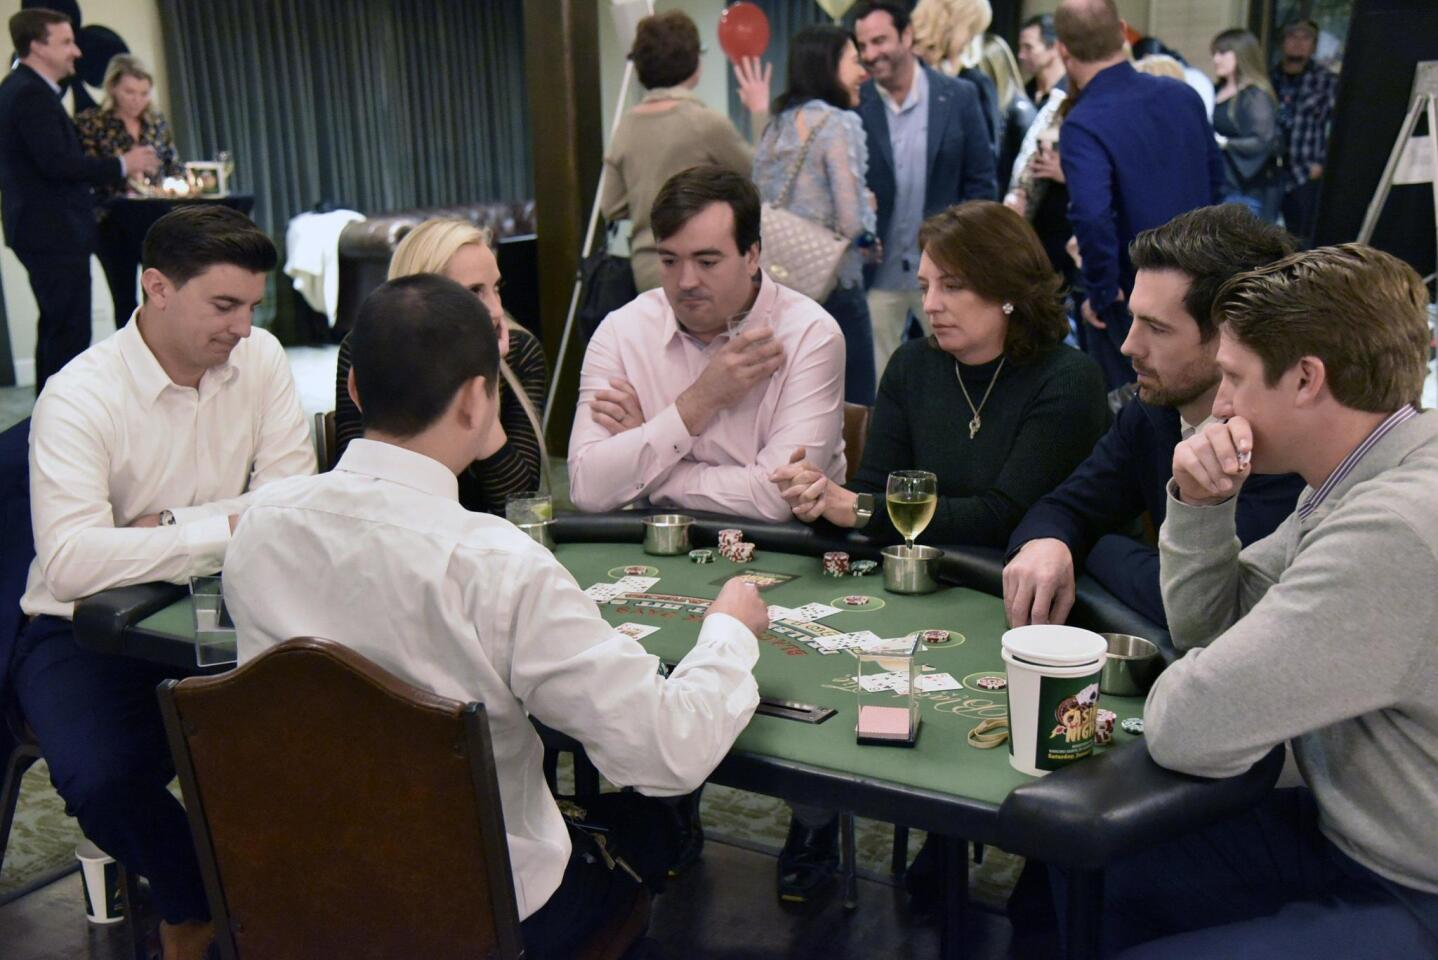 Casino Night benefits RSF Community Center